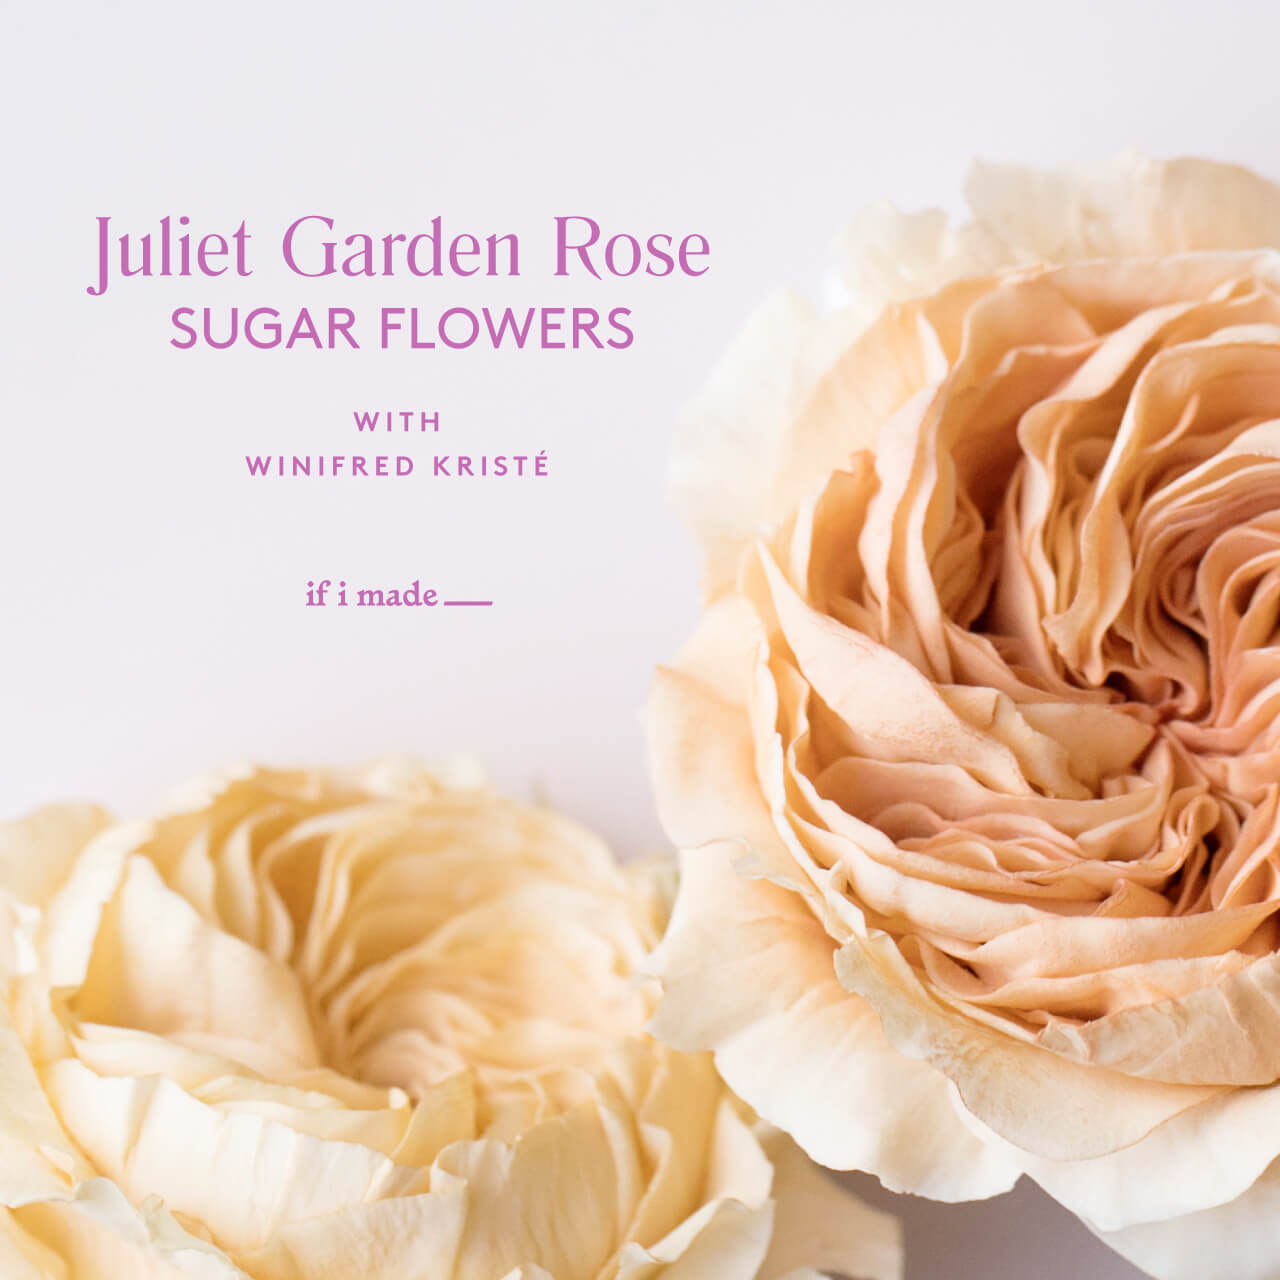 Juliet Garden Rose Sugar Flowers